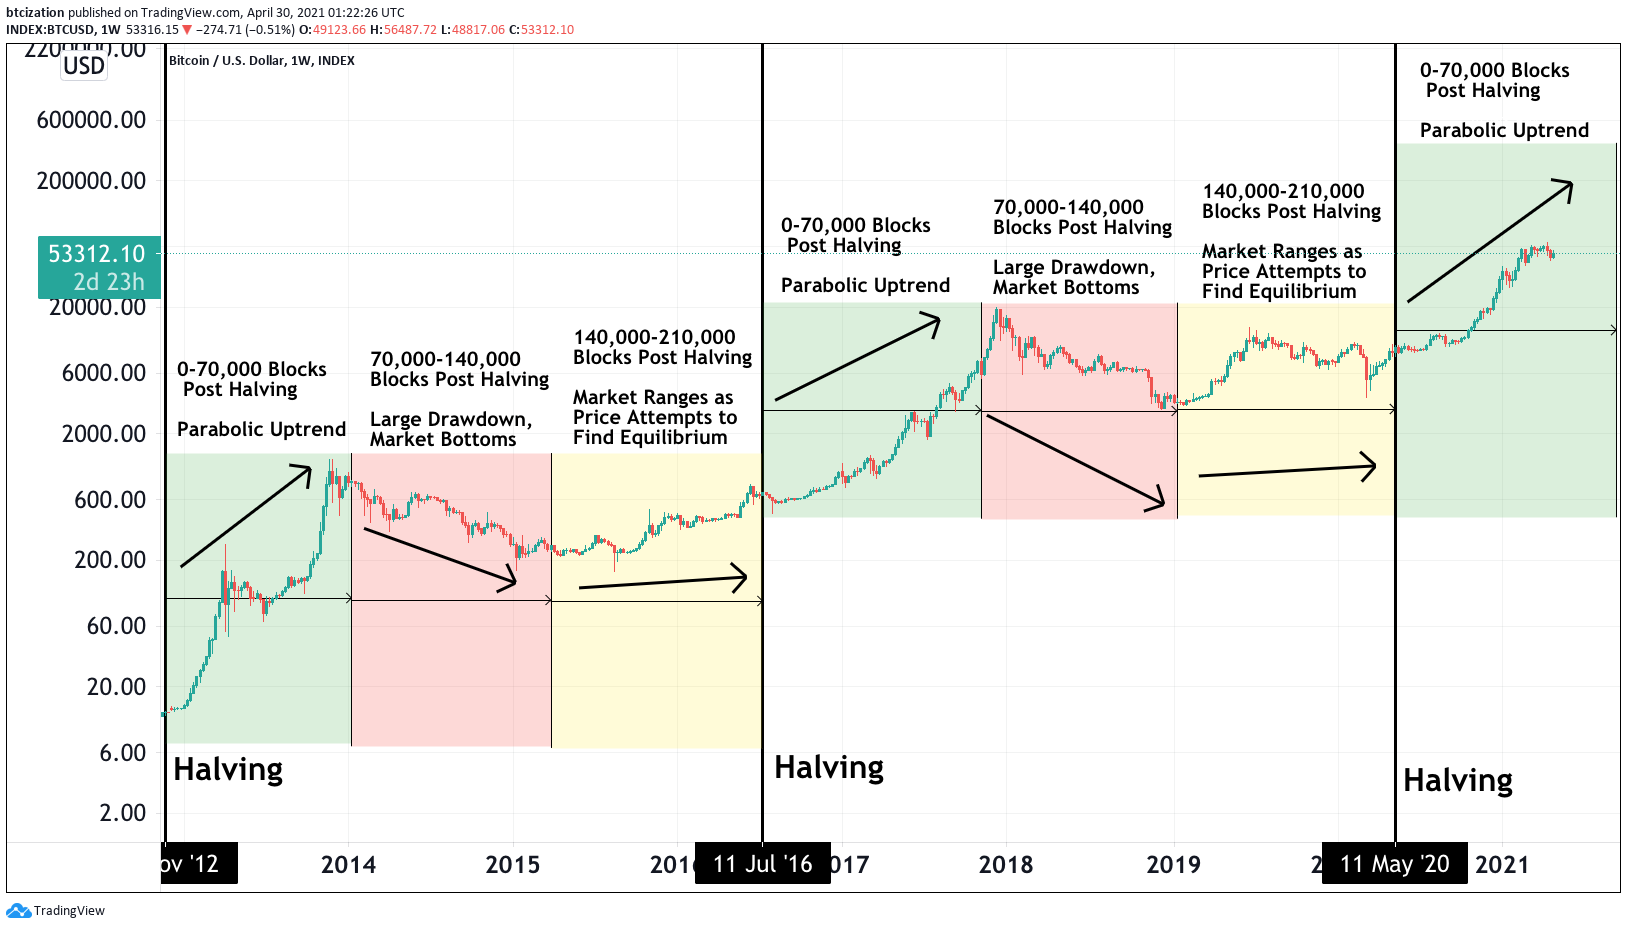 While it's difficult to say for certain that Bitcoin bull markets are caused by halvings, the history of Bitcoin does seem to show a correlation. By Dylan LeClair, Bitcoin Magazine.